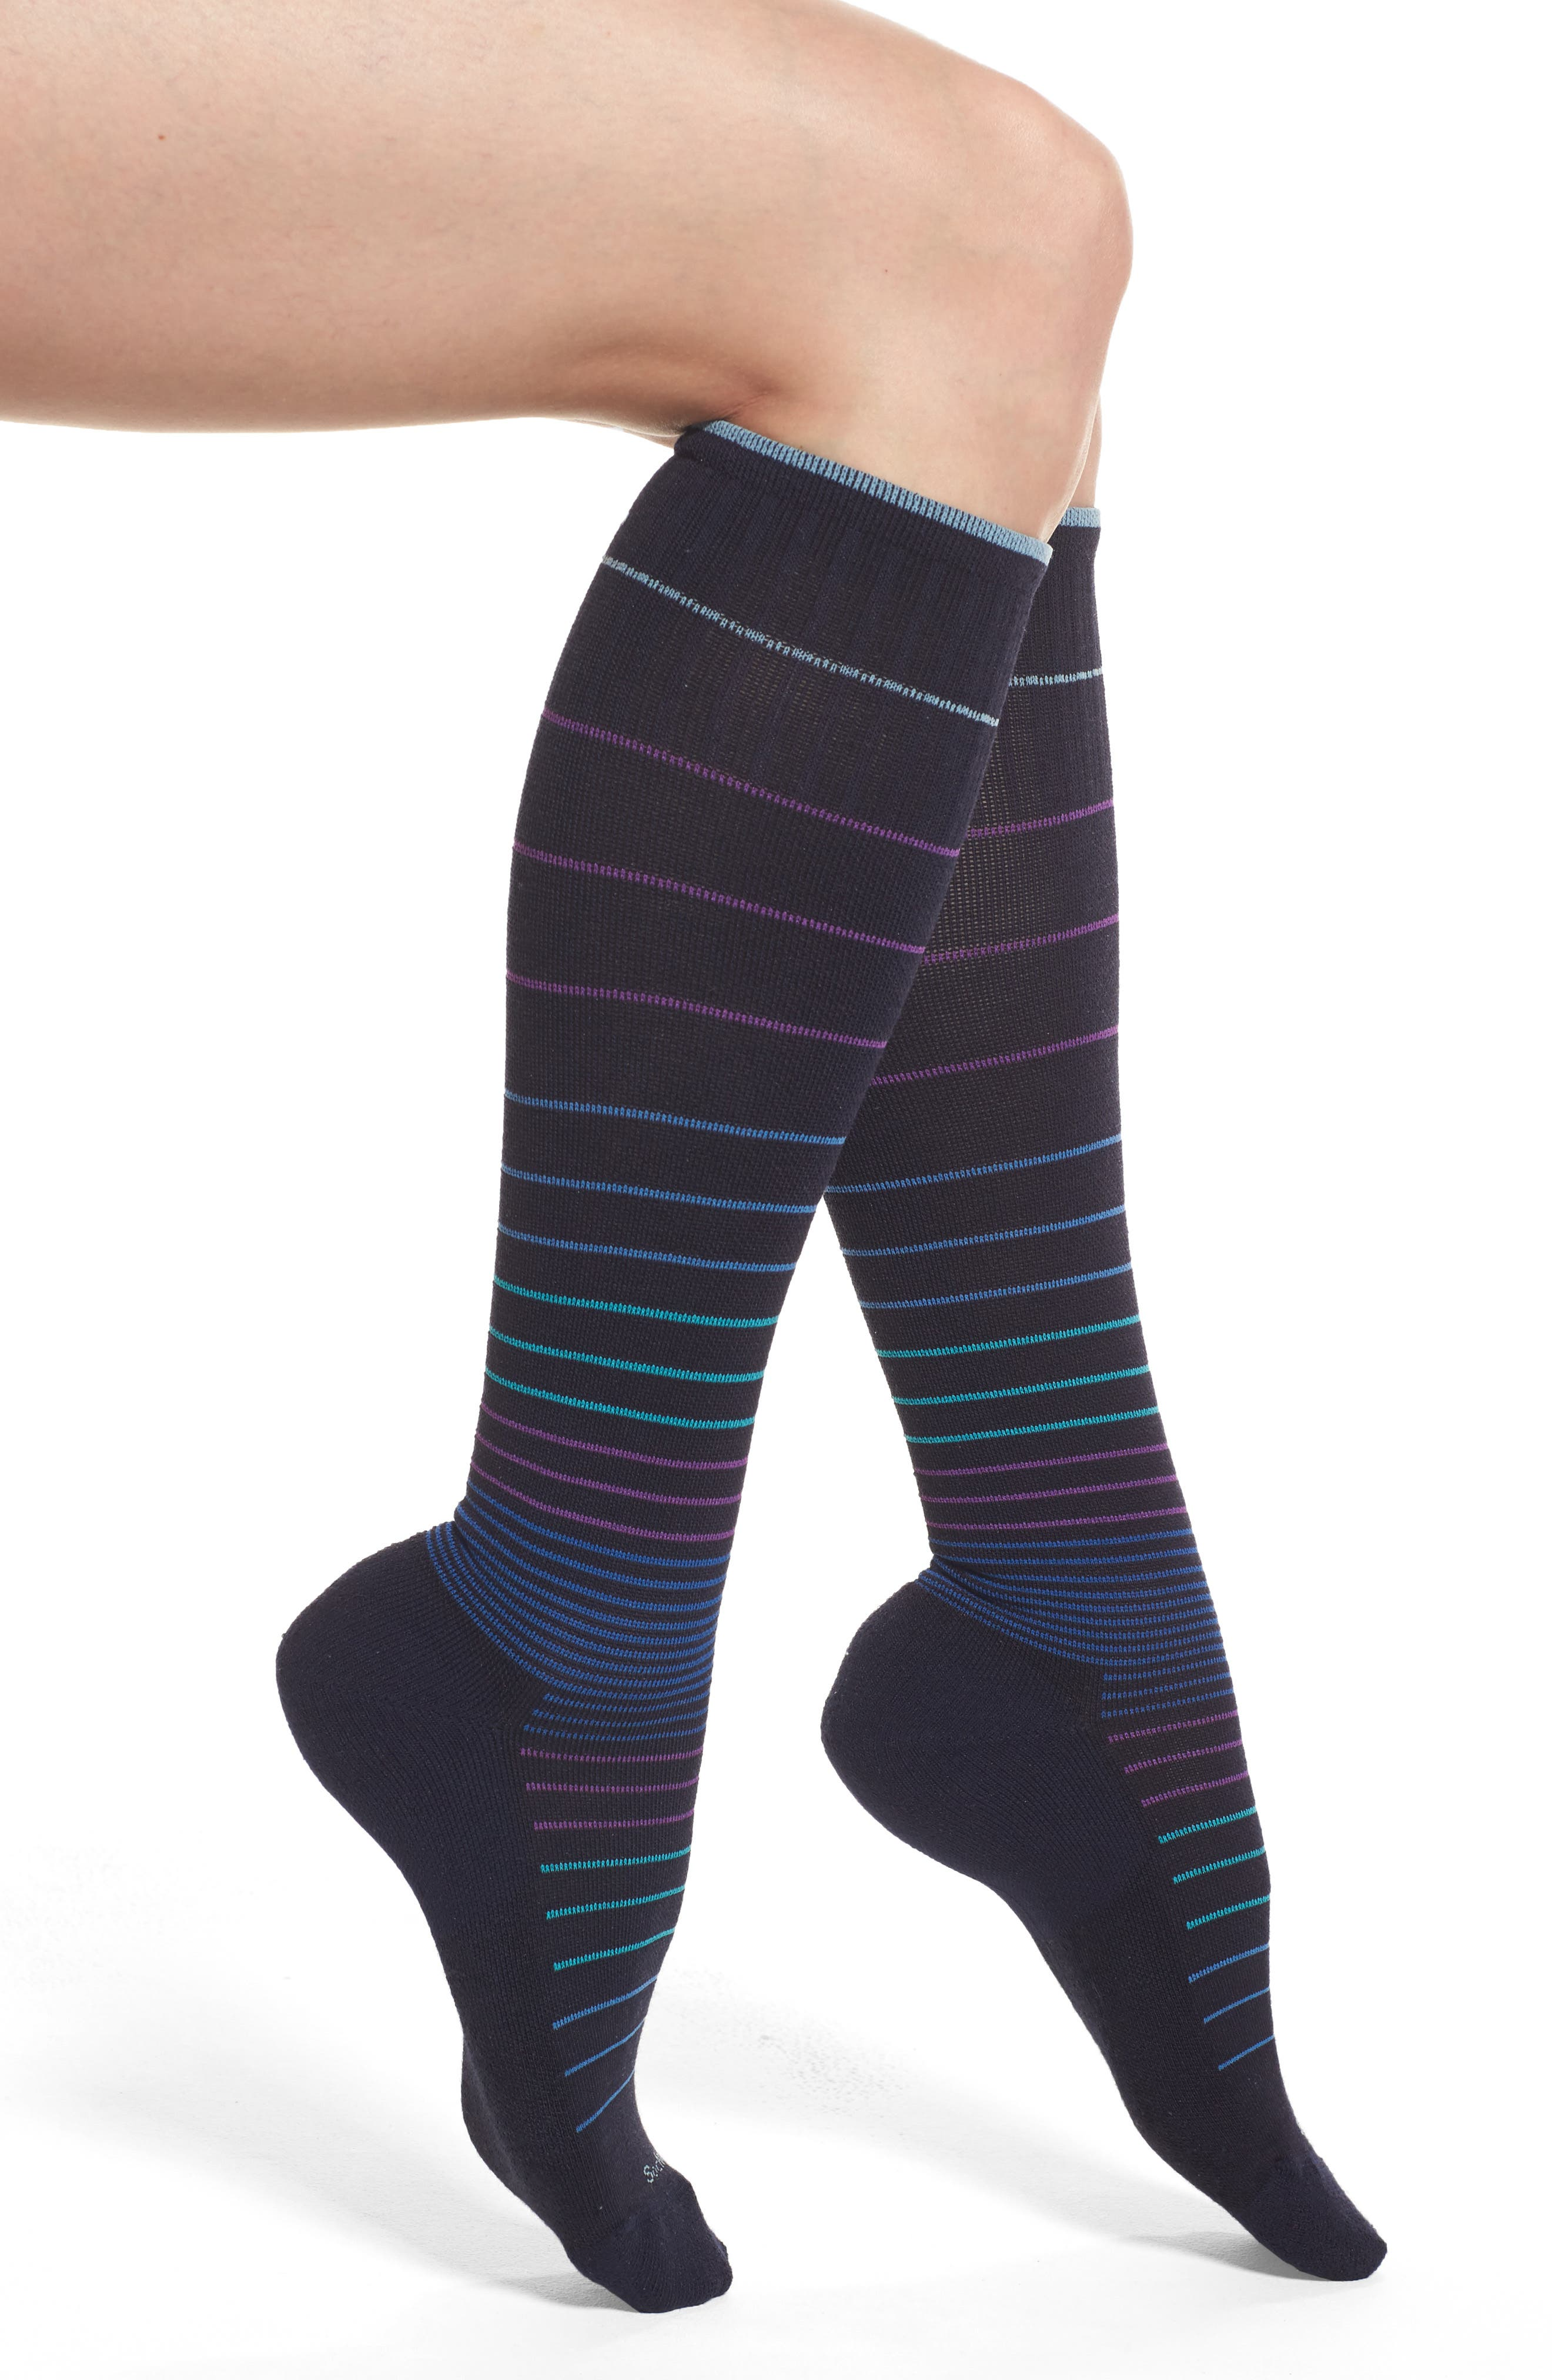 Circulator Compression Socks,                             Alternate thumbnail 2, color,                             NAVY BLACK/ BLUE STRIPES